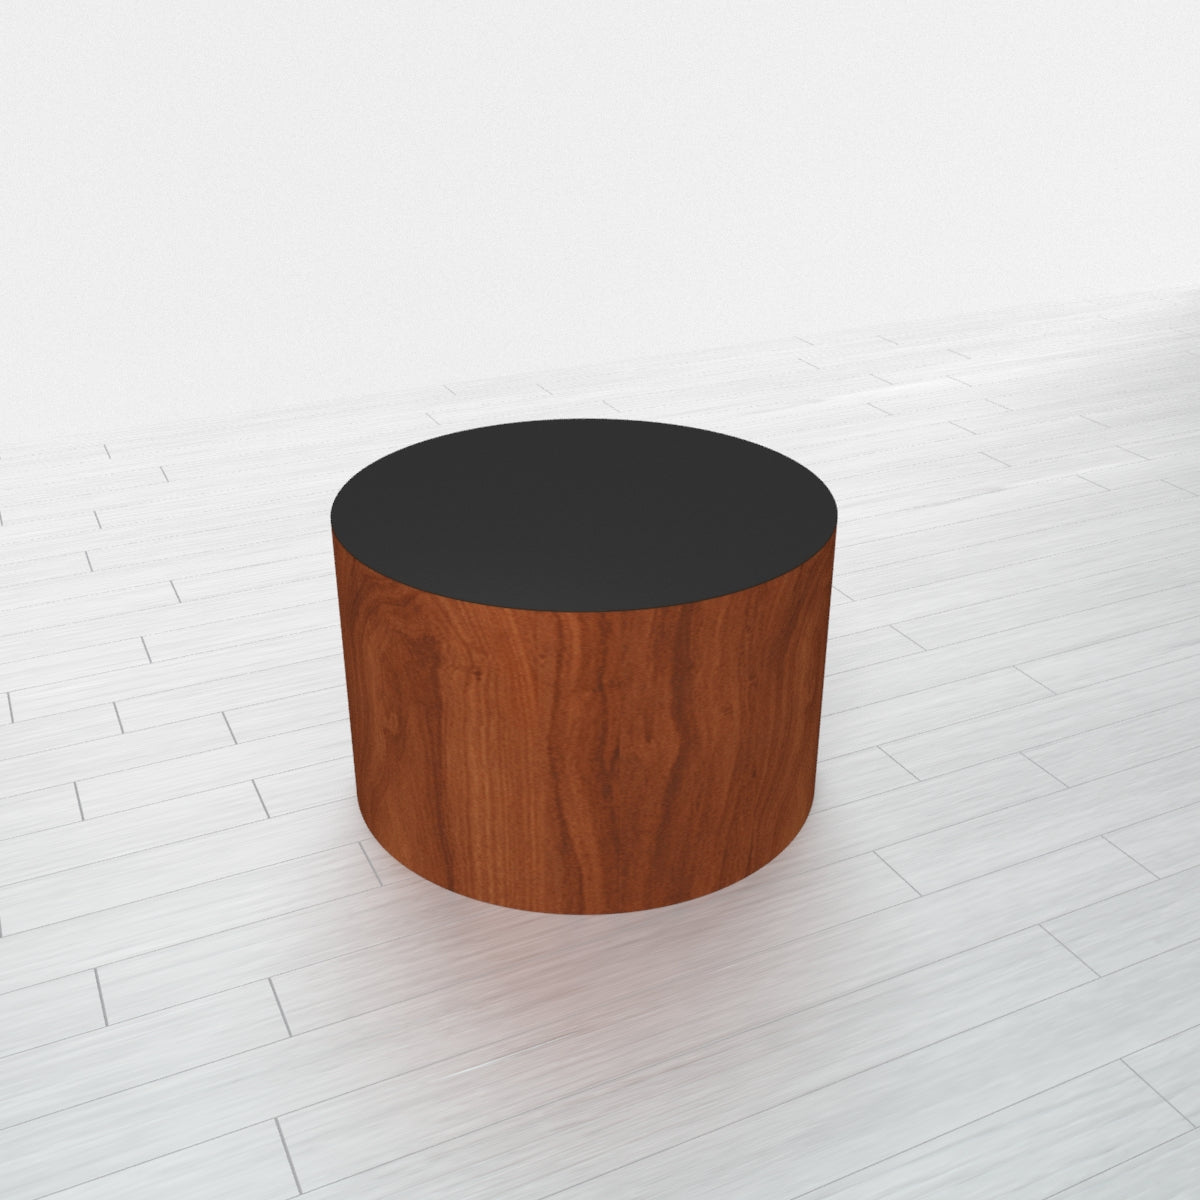 CYLINDRICAL - Cherry Heartwood Base + Black Top - 18x18